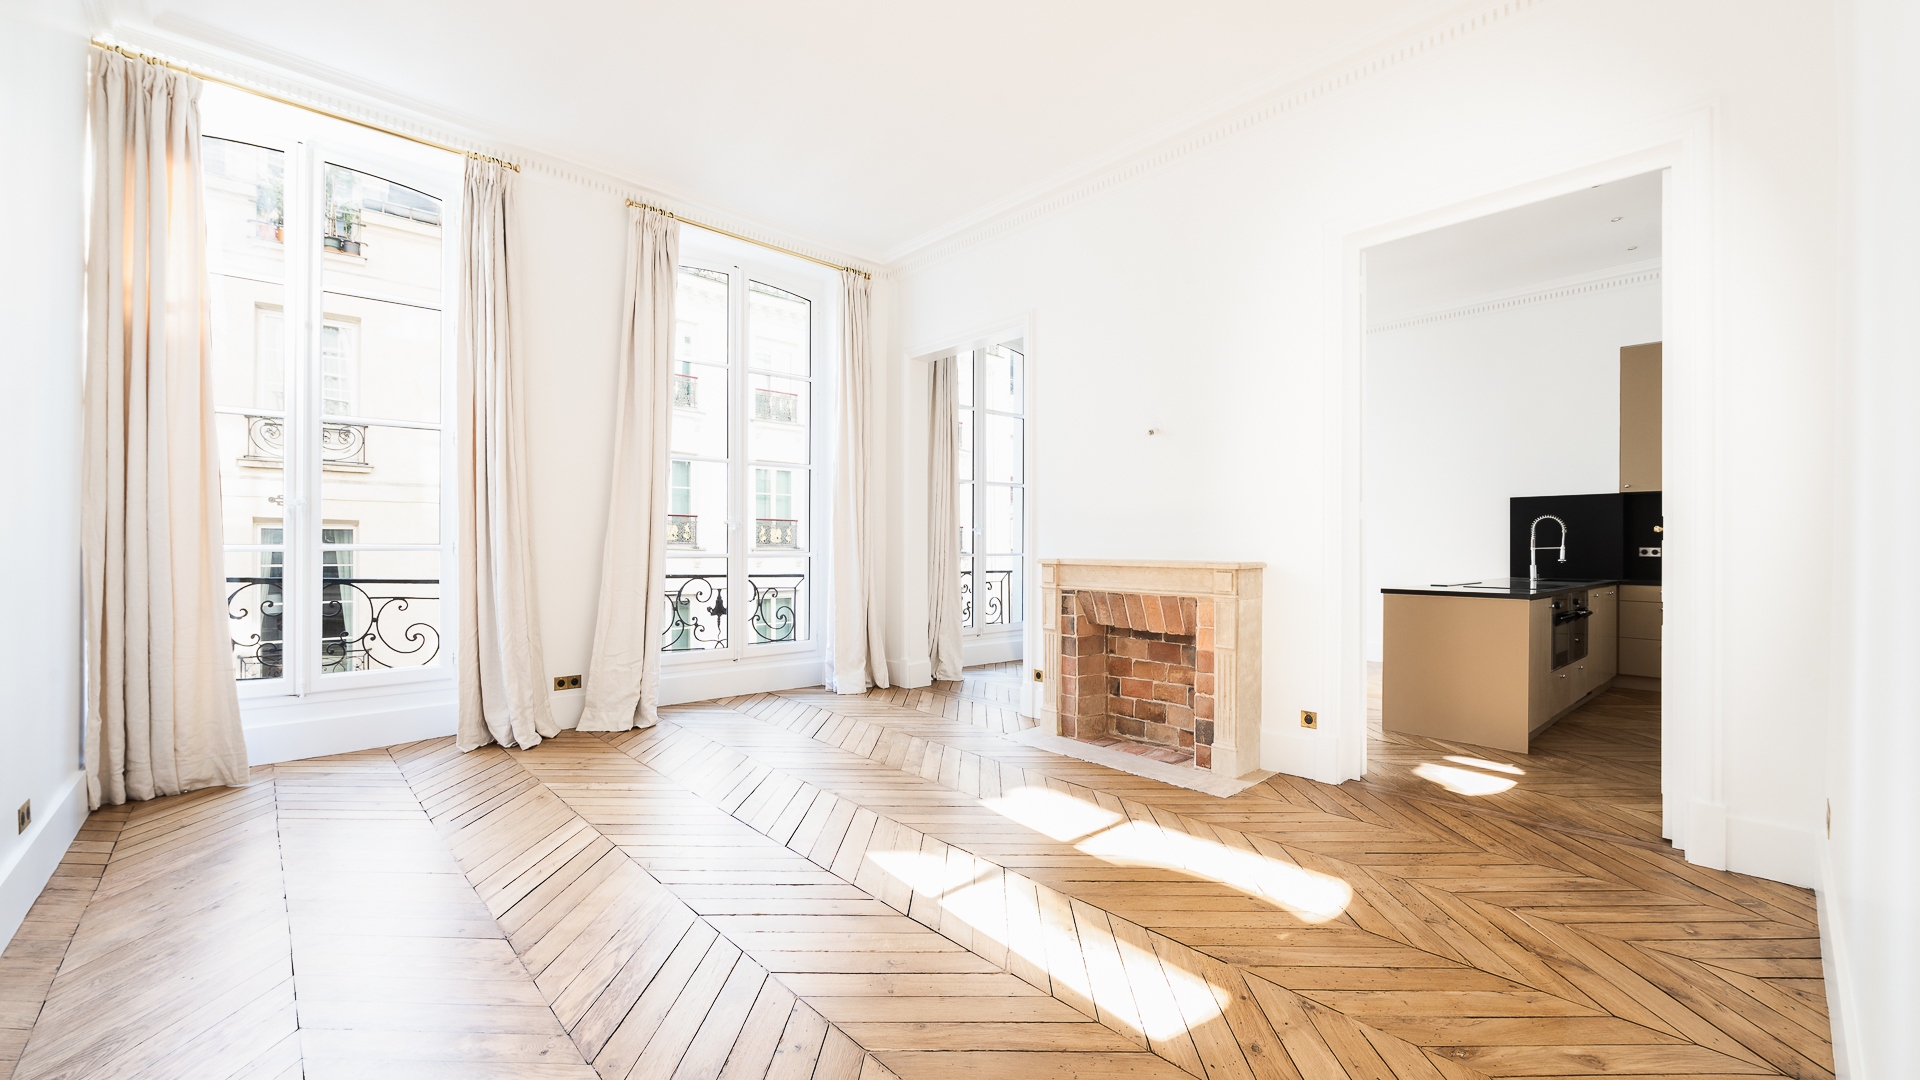 Residence Maison Blanche Lille luxury real estate to buy in paris - junot